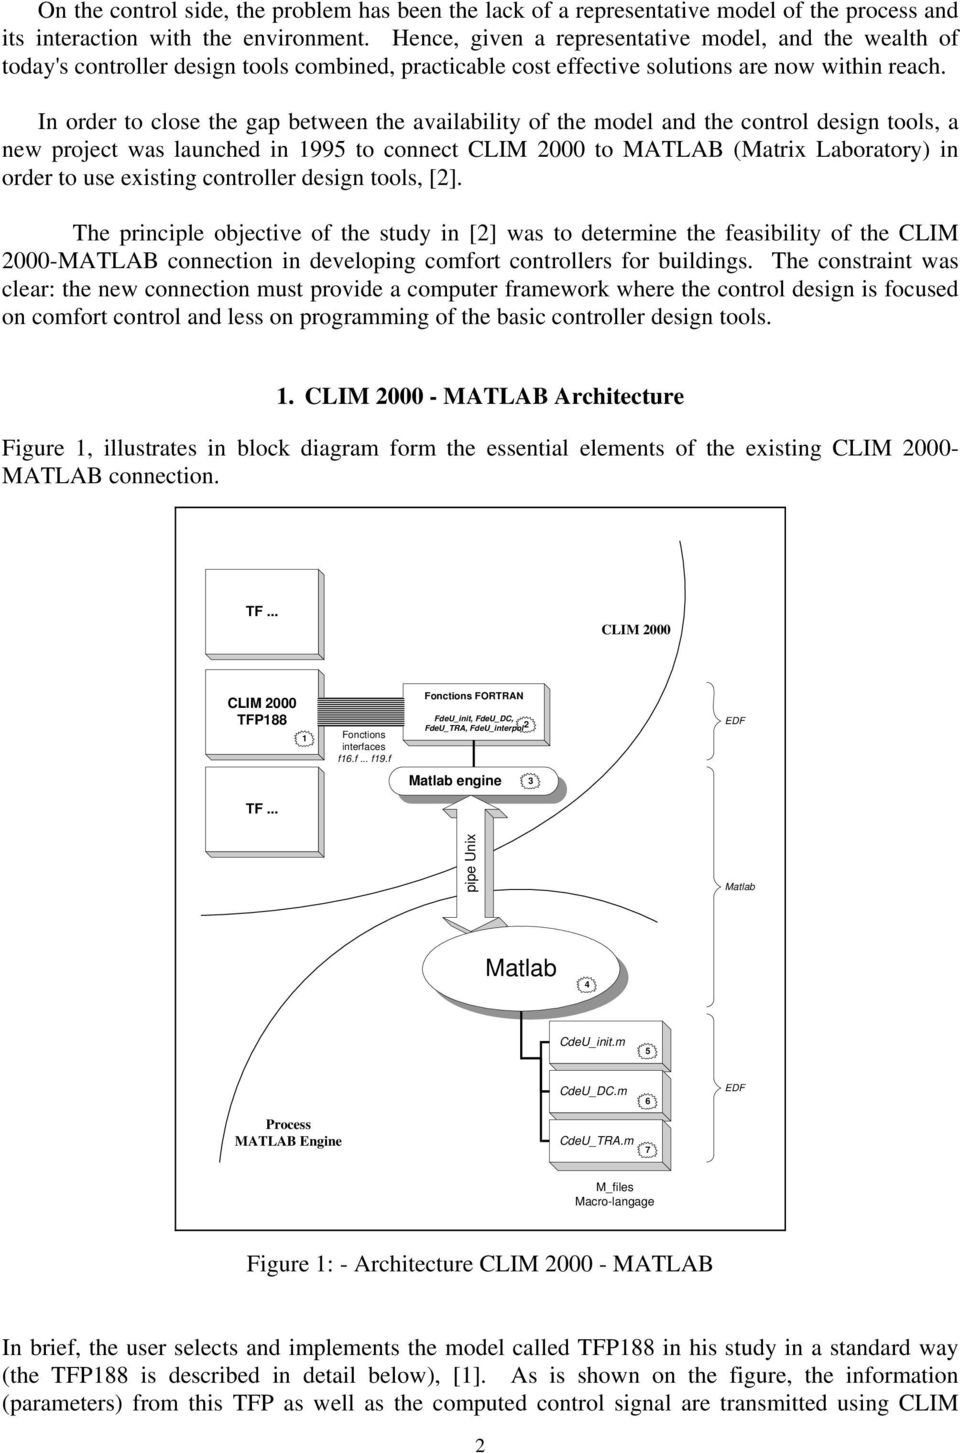 In order to close the gap between the availability of the model and the control design tools, a new project was launched in 1995 to connect CLIM 2000 to MATLAB (Matrix Laboratory) in order to use